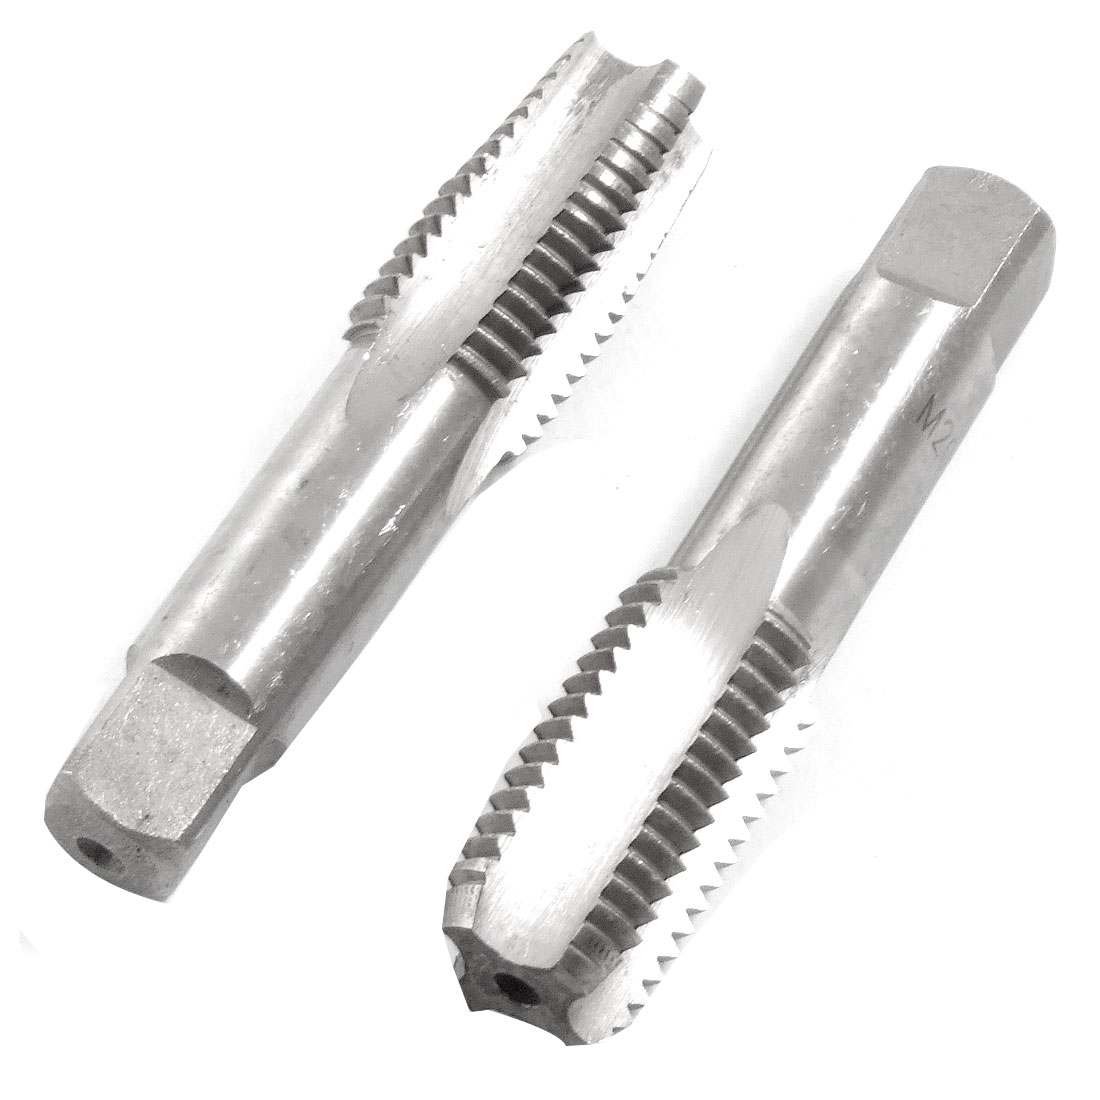 2 Pcs Square Head HSS M20 4 Flutes Hand Screw Thread Metric Taps